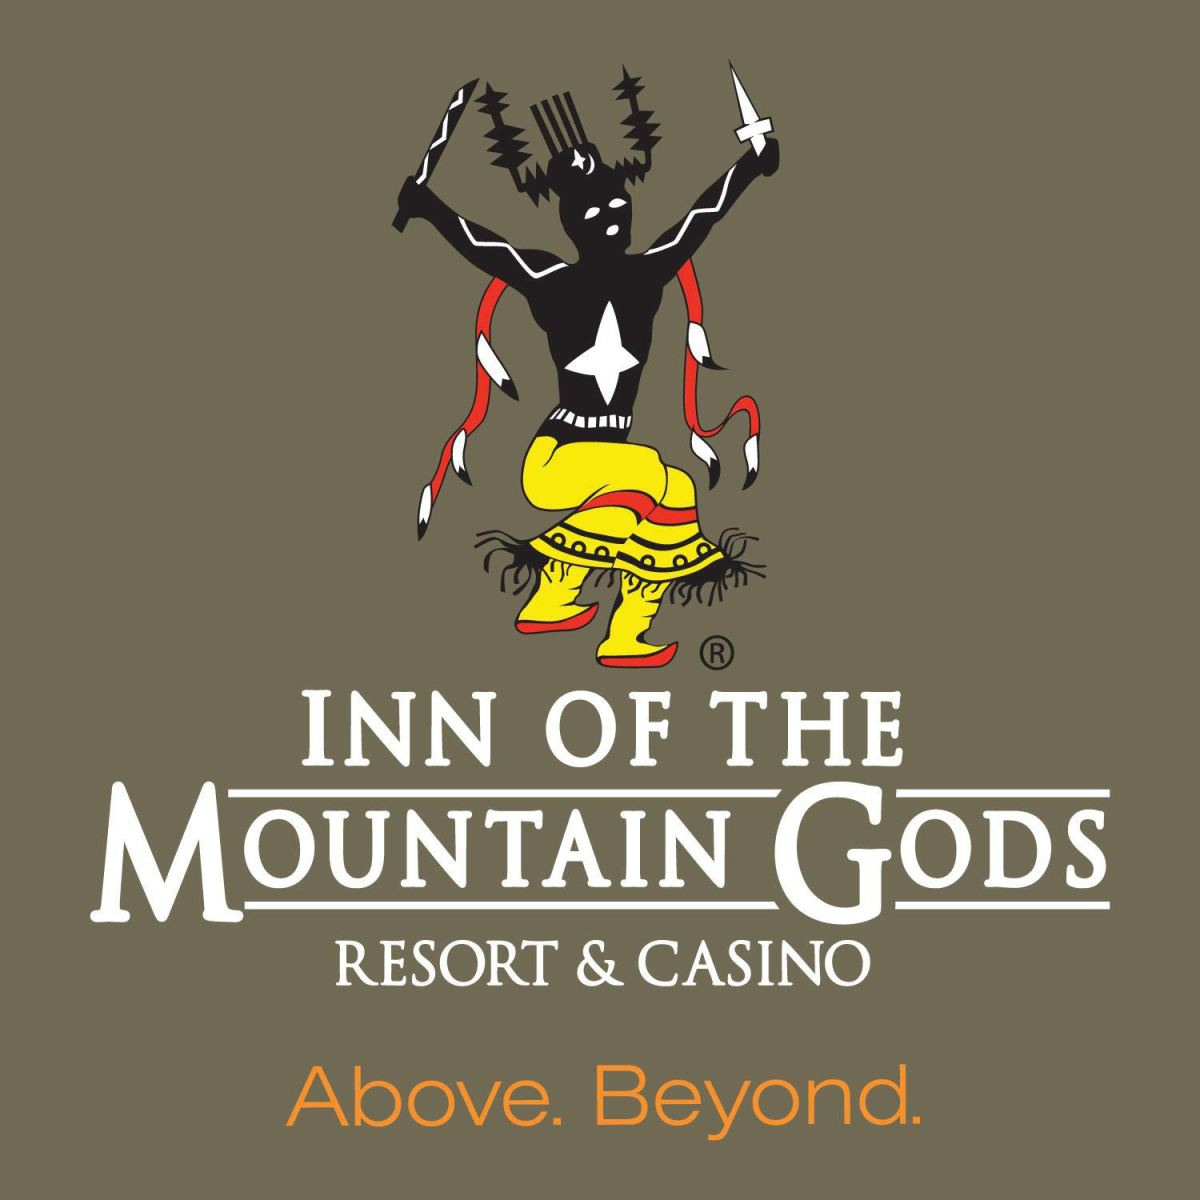 Inn of the mountain gods resort and casino station casinos phone number